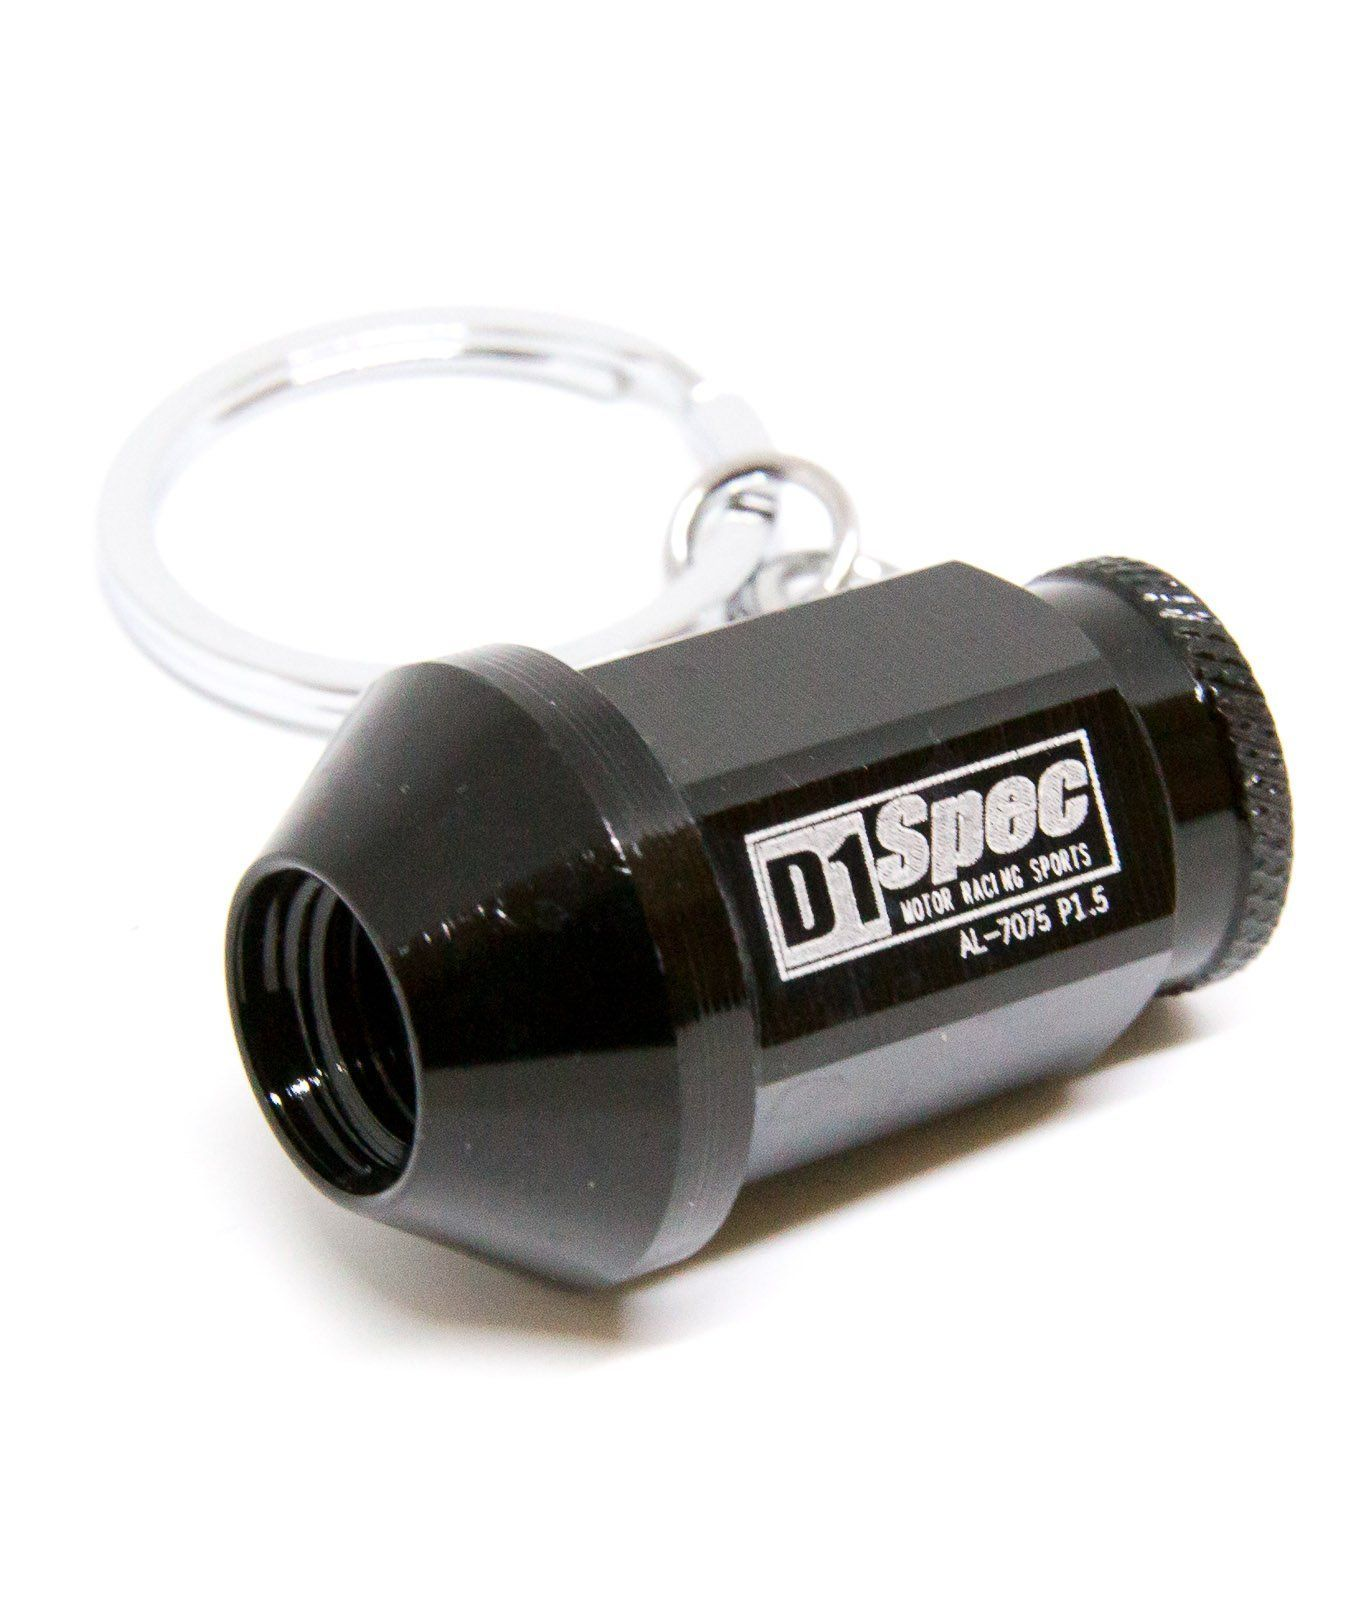 D1 Wheel Nut Key Ring